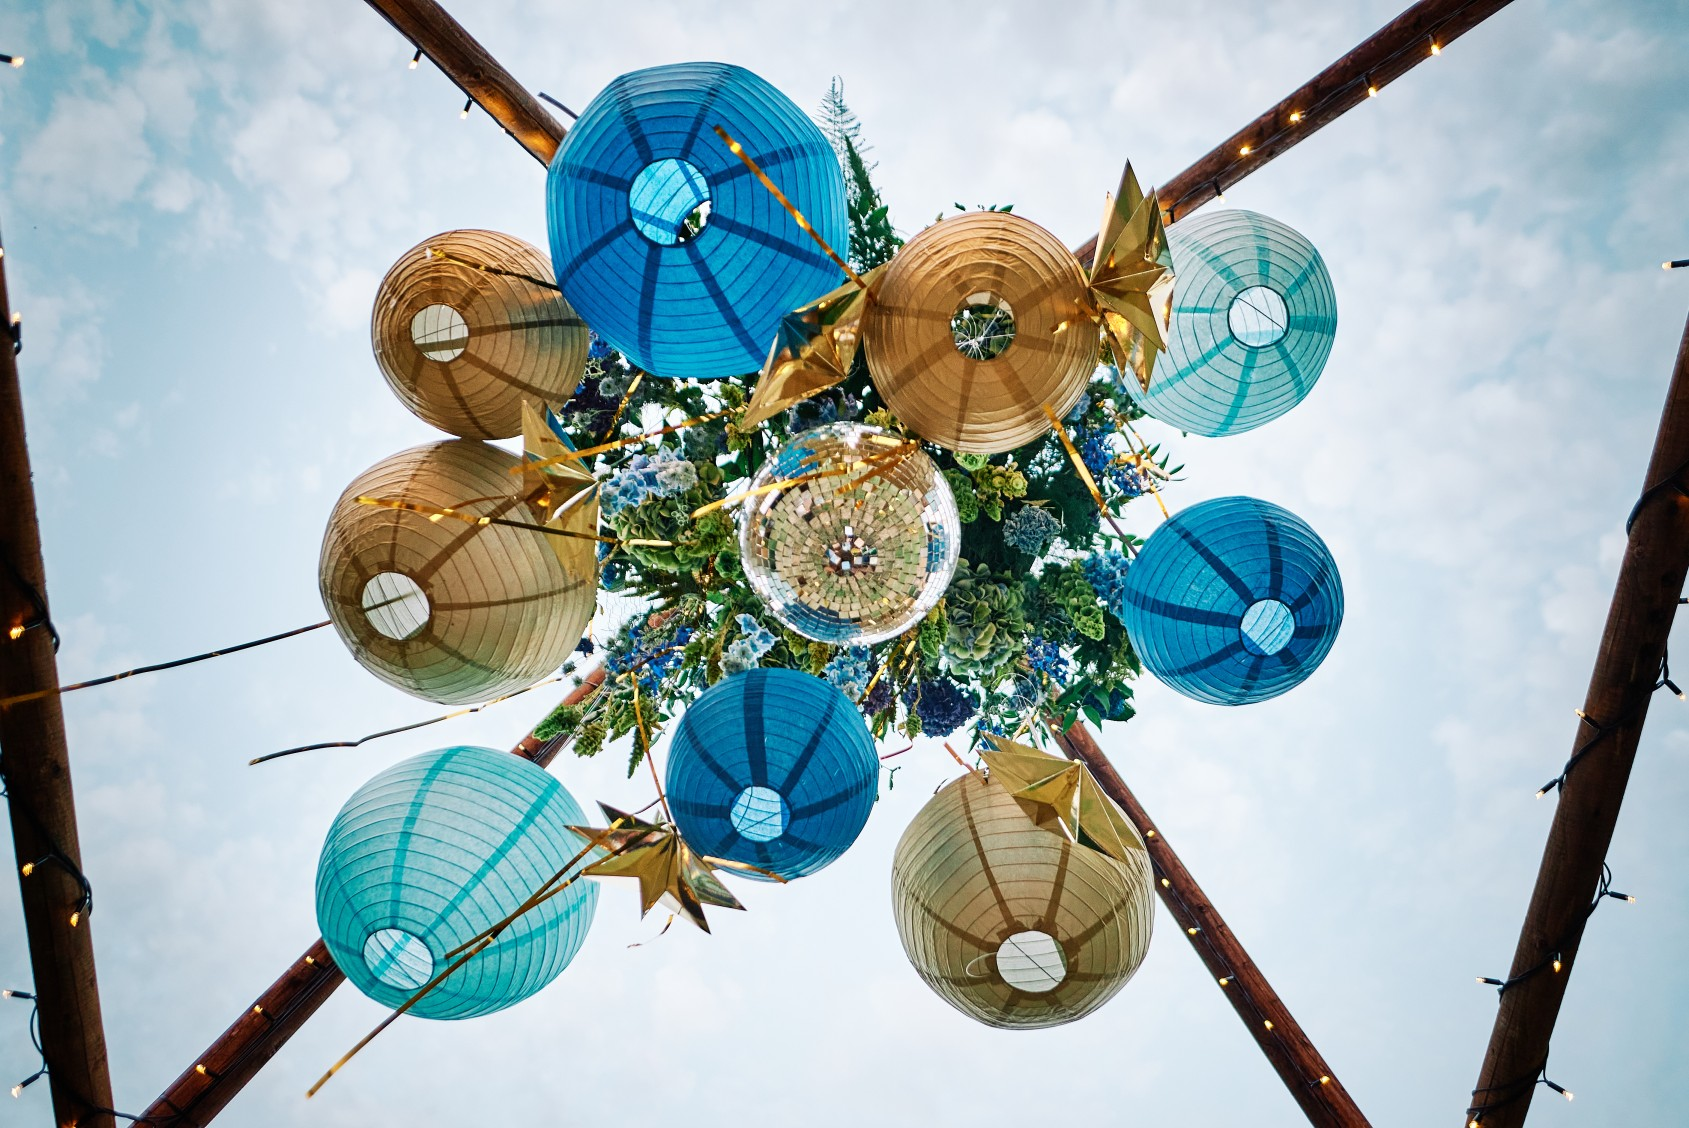 nhs wedding - paramedic wedding - blue and gold wedding - outdoor wedding - micro wedding - surprise wedding - blue and gold paper lanterns